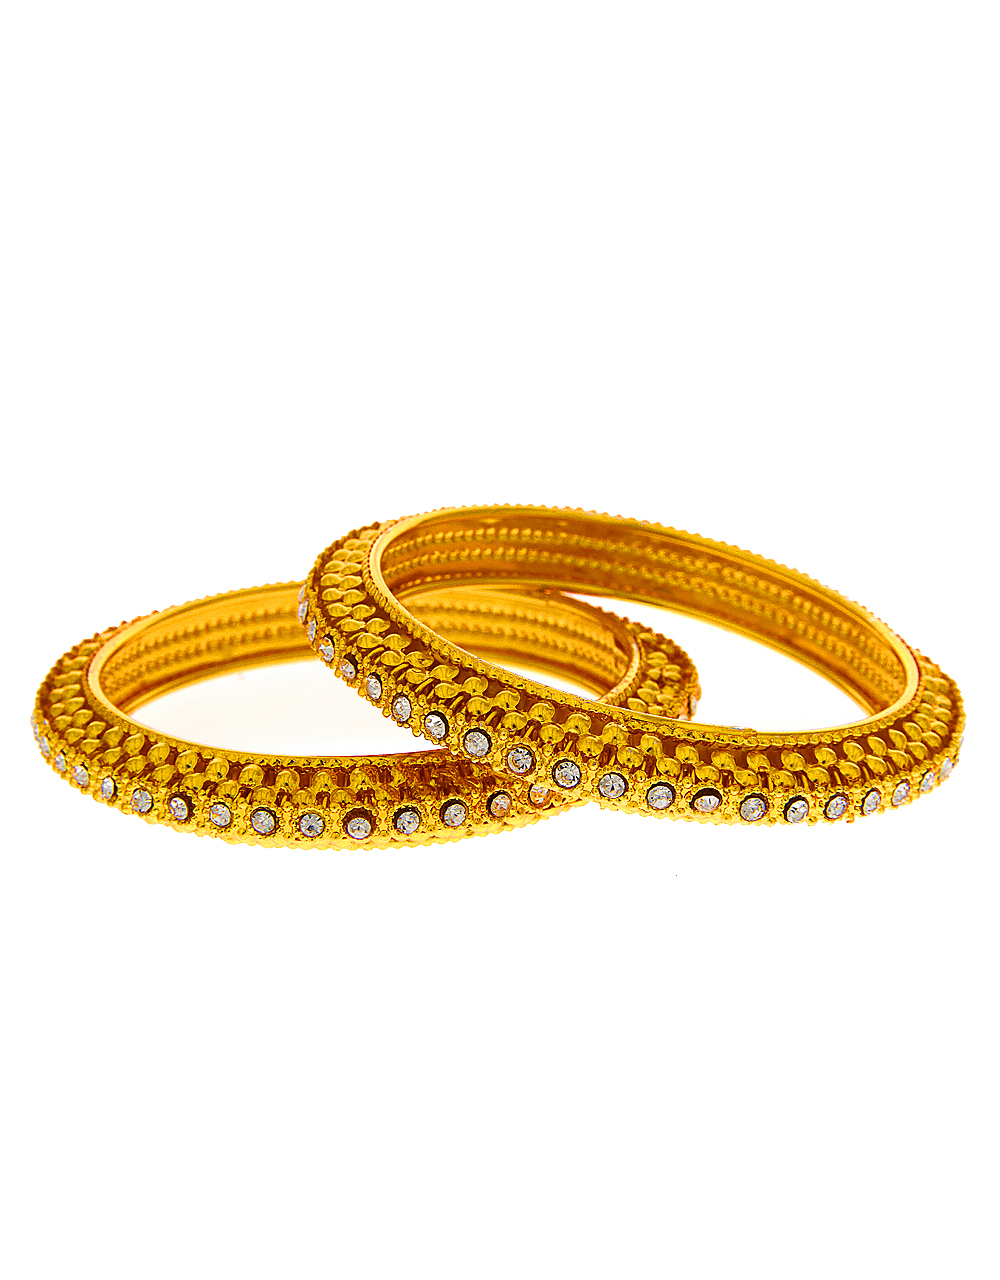 Adorable Gold Tone Bangles Studded With Stones Kada Bangles